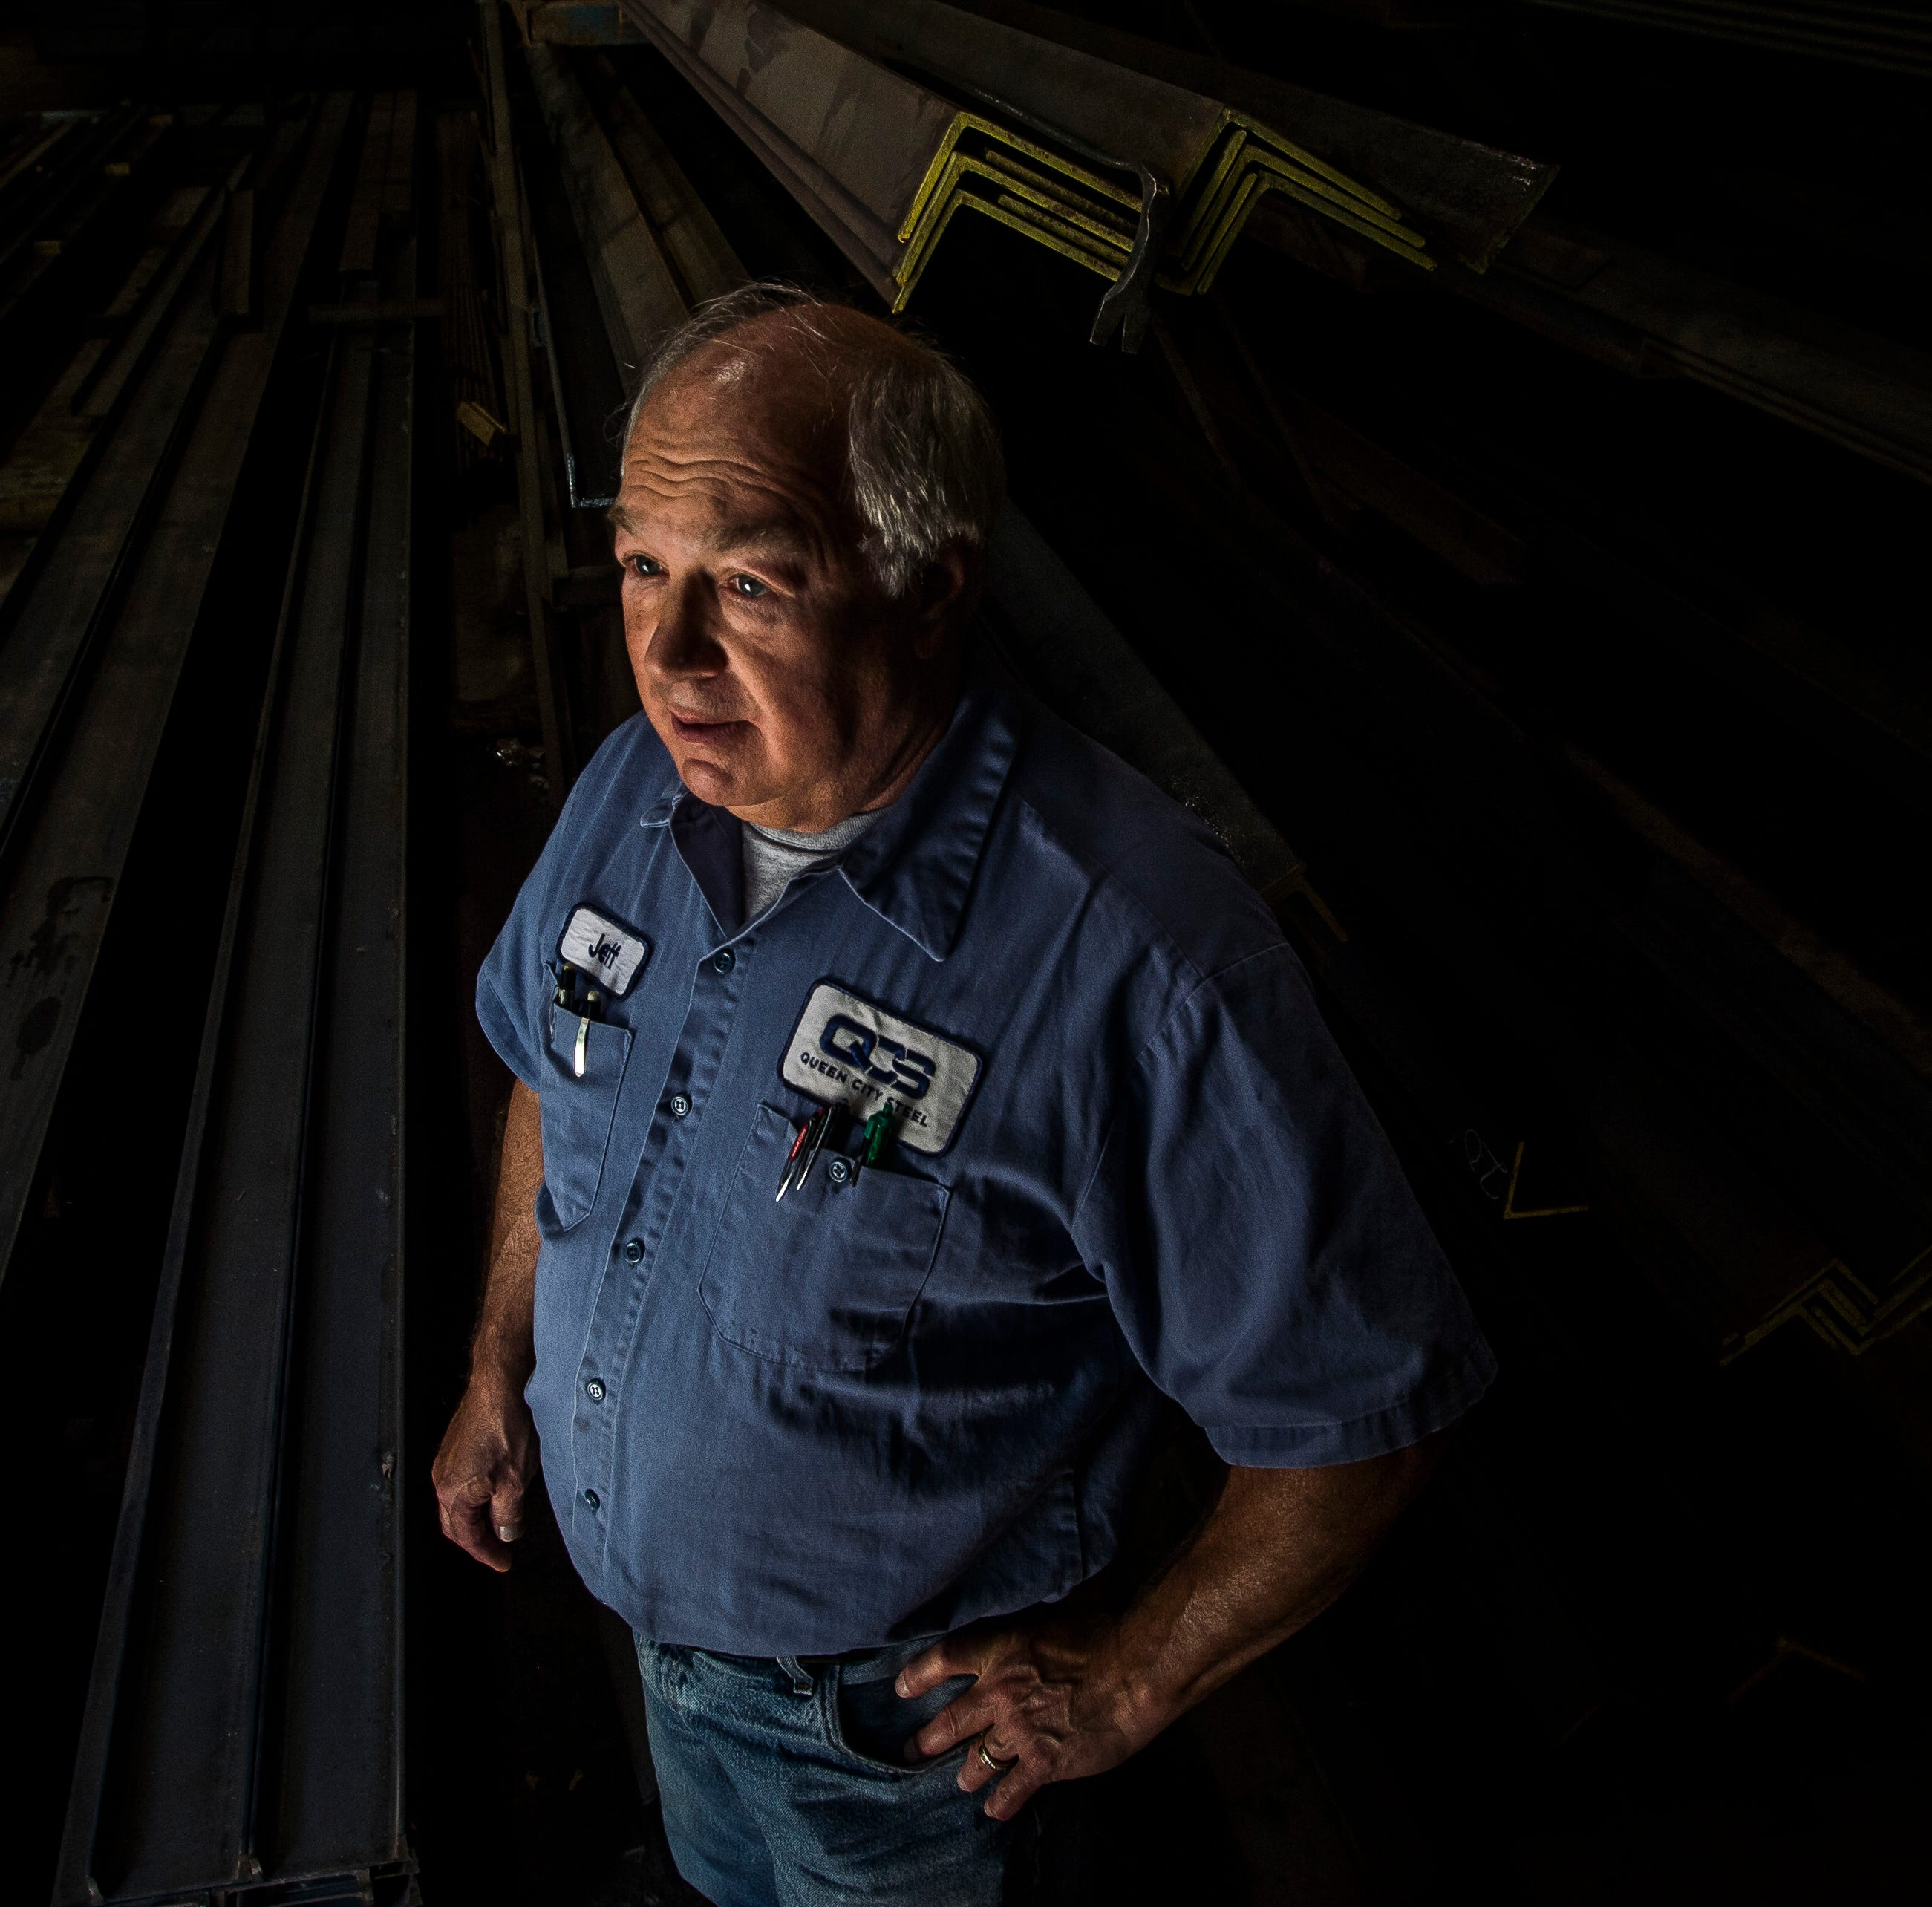 Jeff Goldfield, owner of Queen City Steel in Burlington, Vt., says that steel prices started jumping up months before President Trump even started to talk about a tariff on Canadian metal imports, adding that the hikes were 'significant' and have continued to rise. He says that orders for steel now takes weeks for fulfill -- and sometimes longer -- when it used to take days.